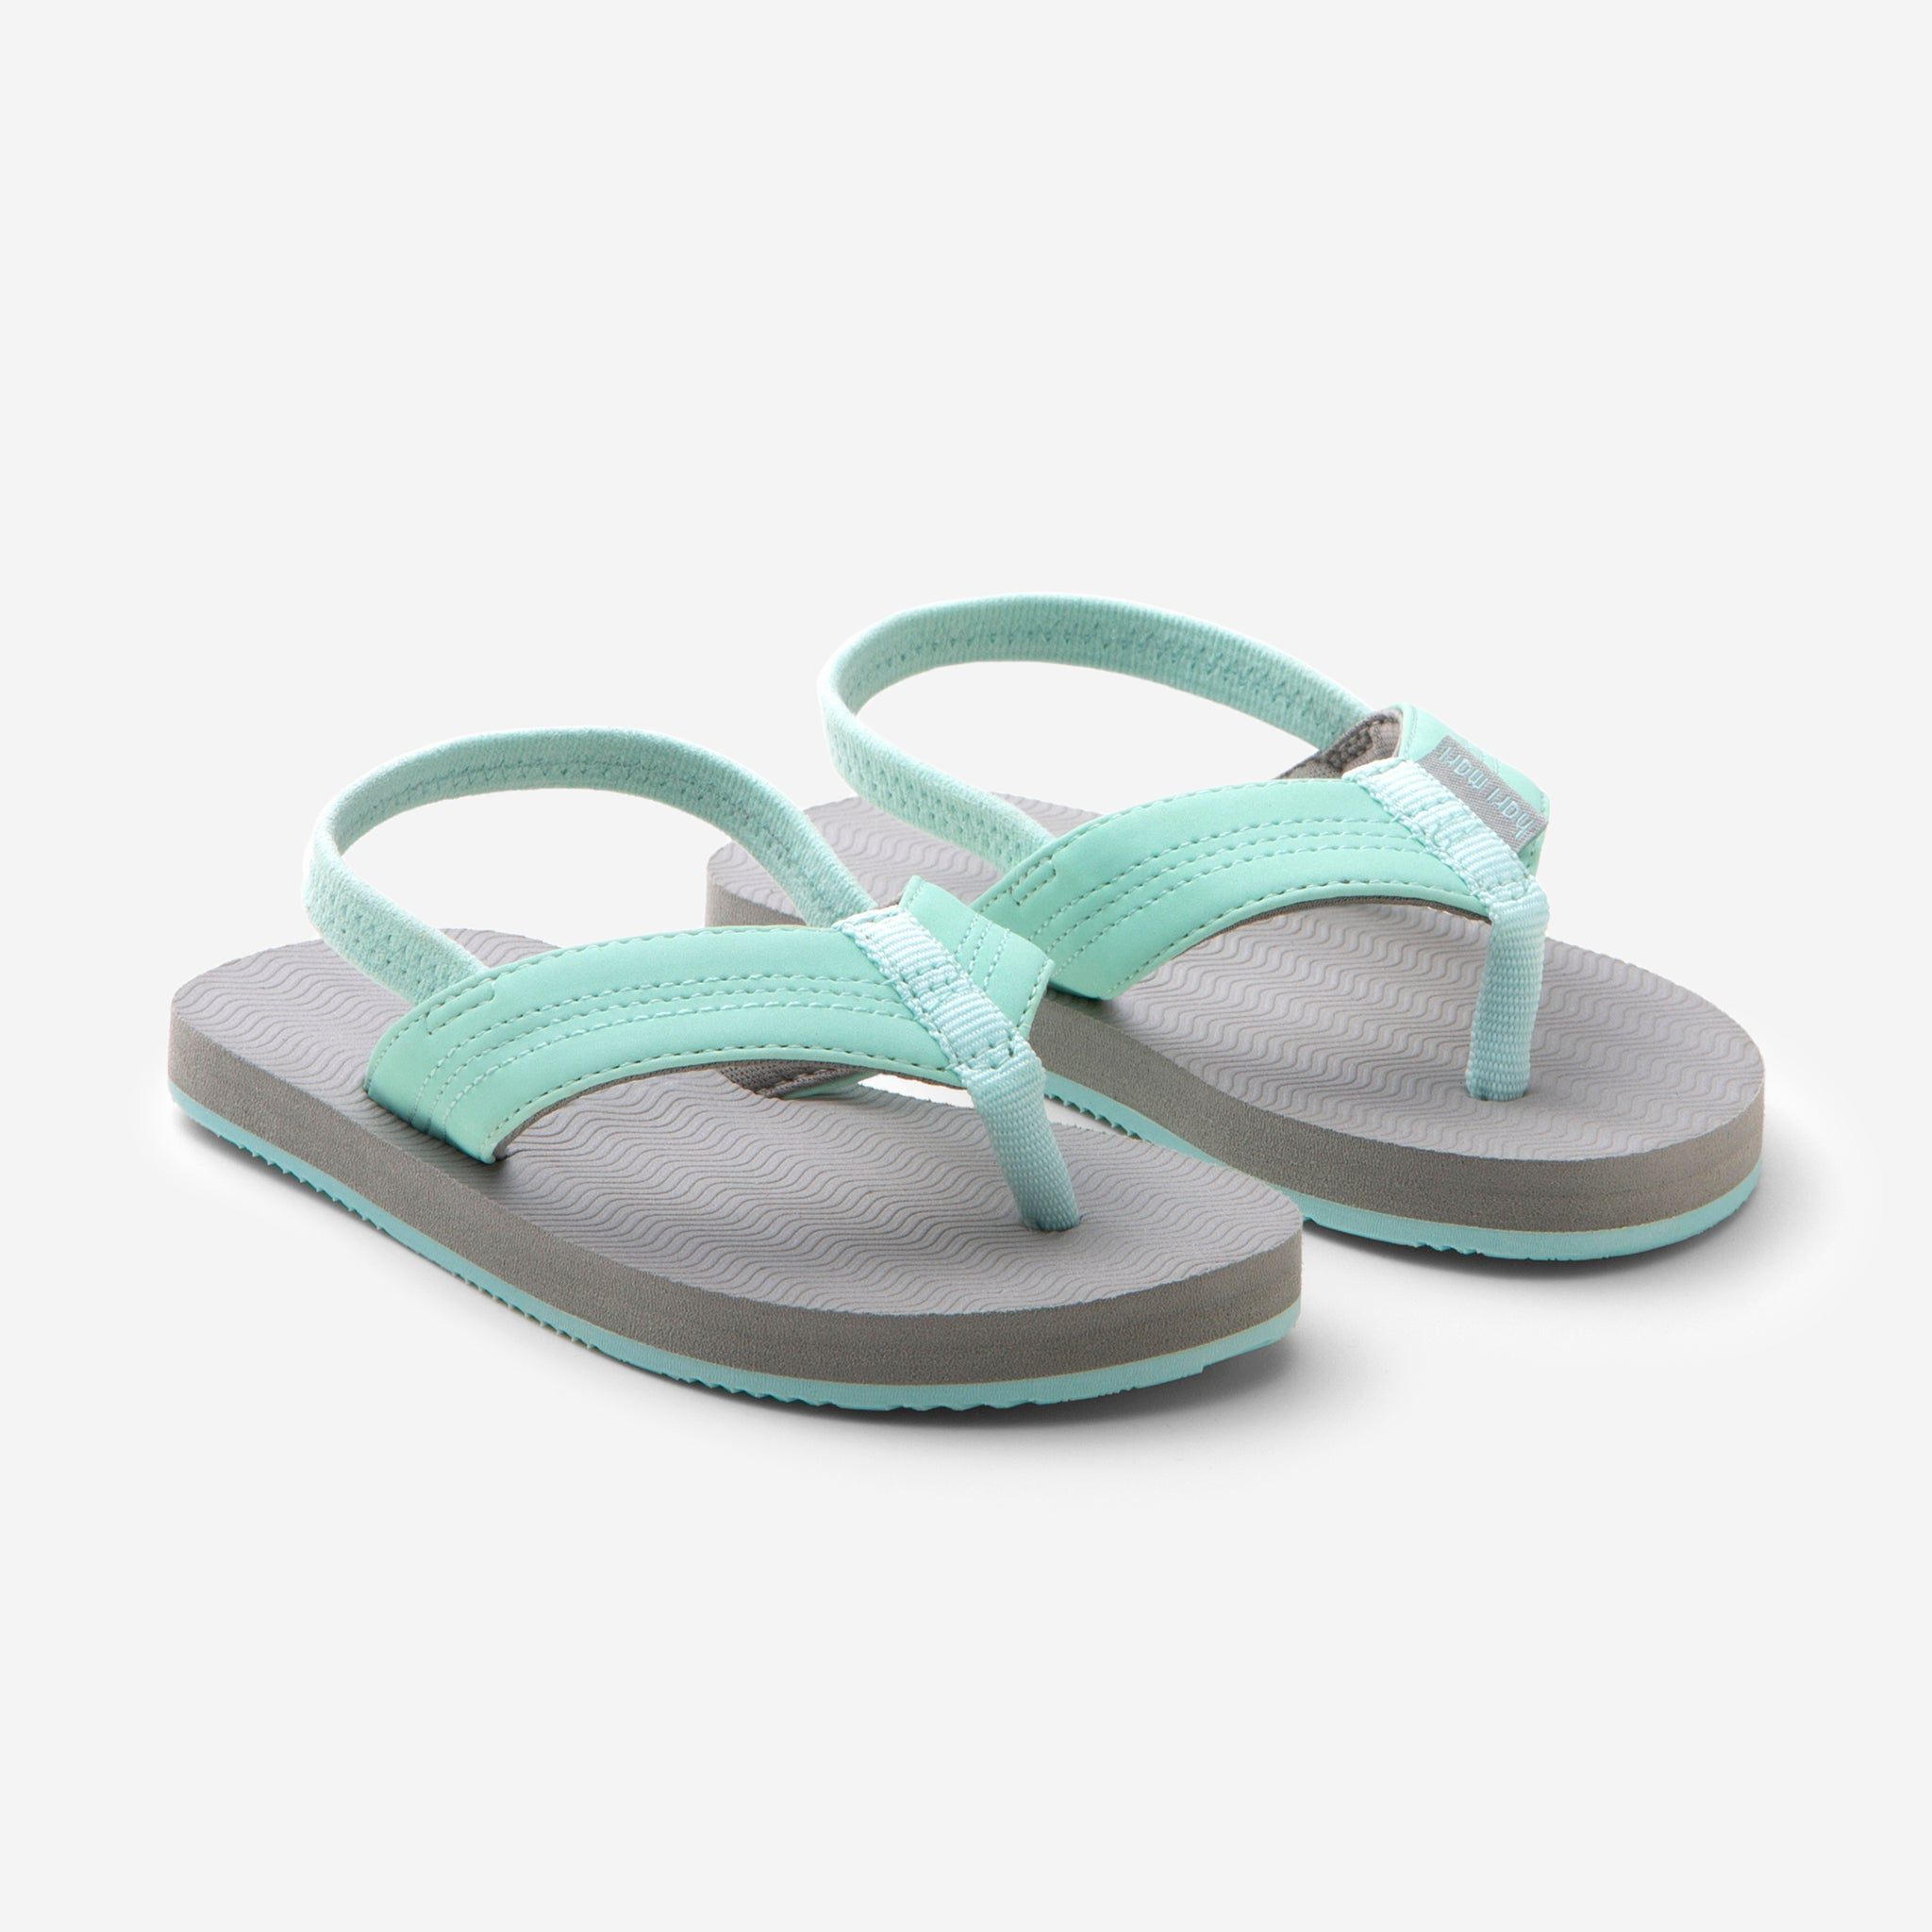 Hari Mari's Youth Brazos flip flops in aqua/grey on white background